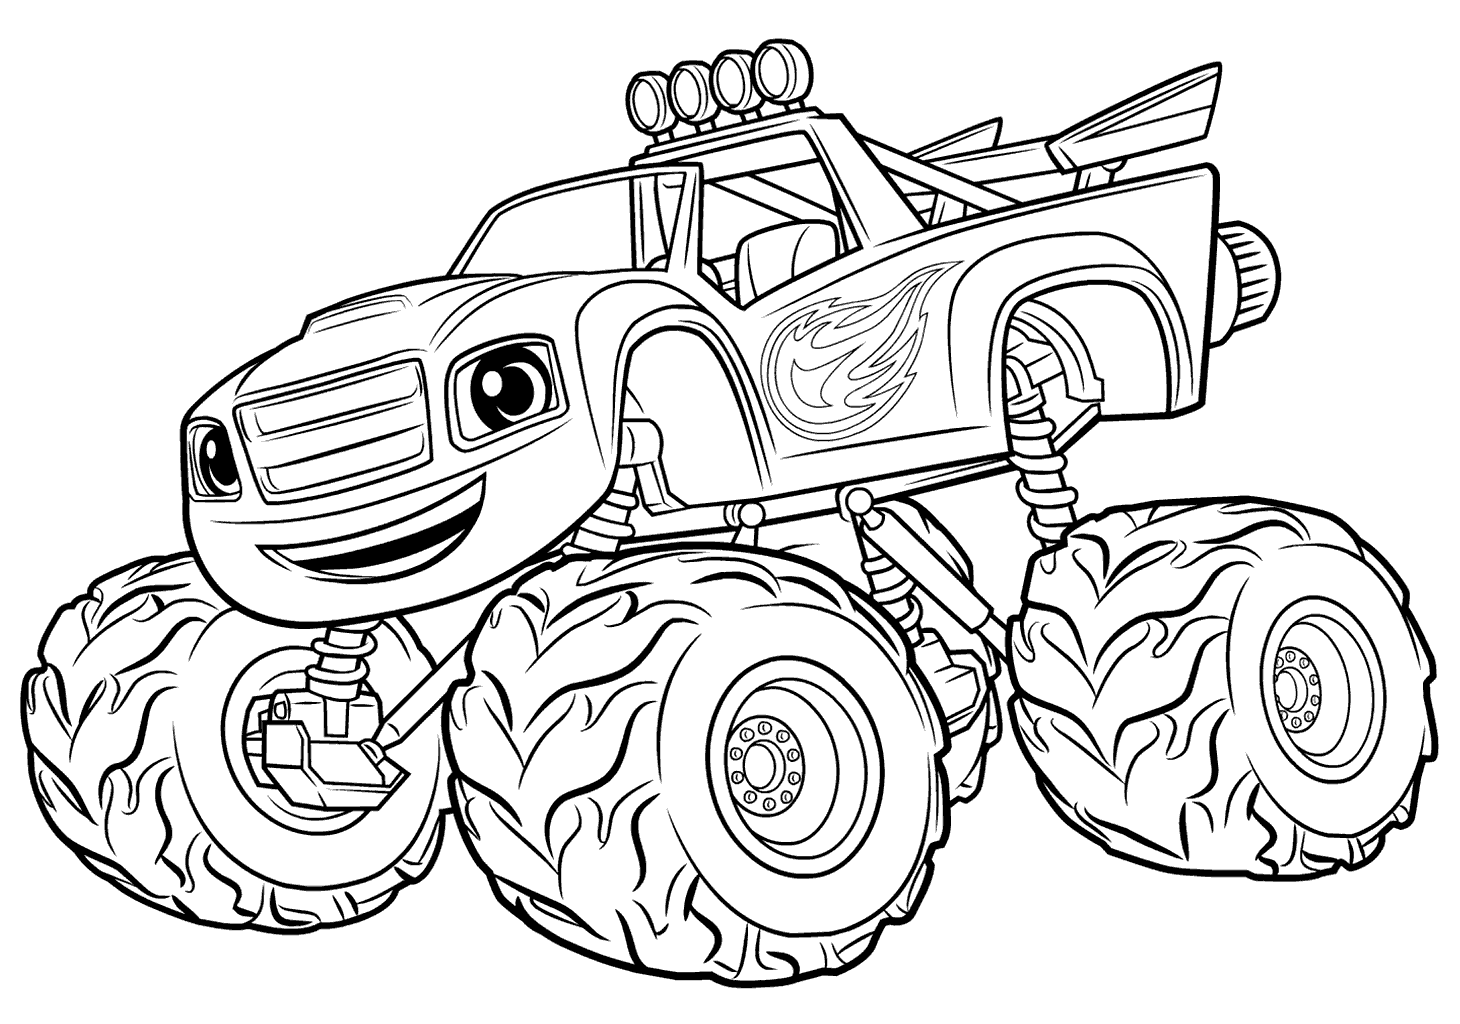 Blaze And The Monster Machines Coloring Pages Best Coloring Pages For Kids Monster Truck Coloring Pages Monster Coloring Pages Truck Coloring Pages [ 1024 x 1460 Pixel ]